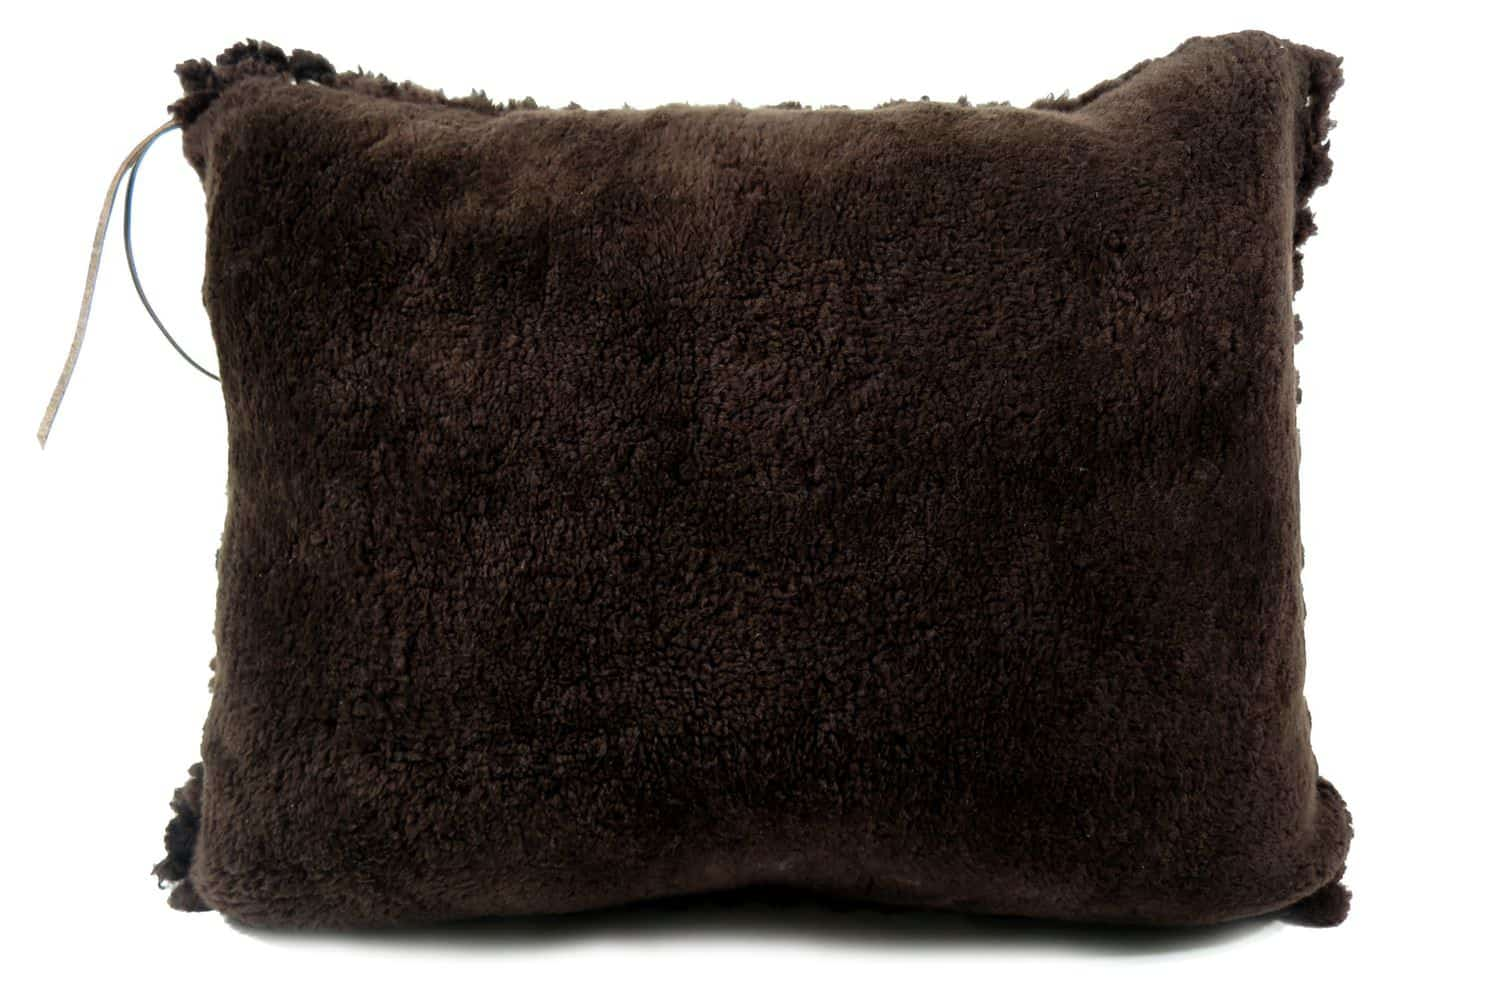 mouton-cushion-68-52